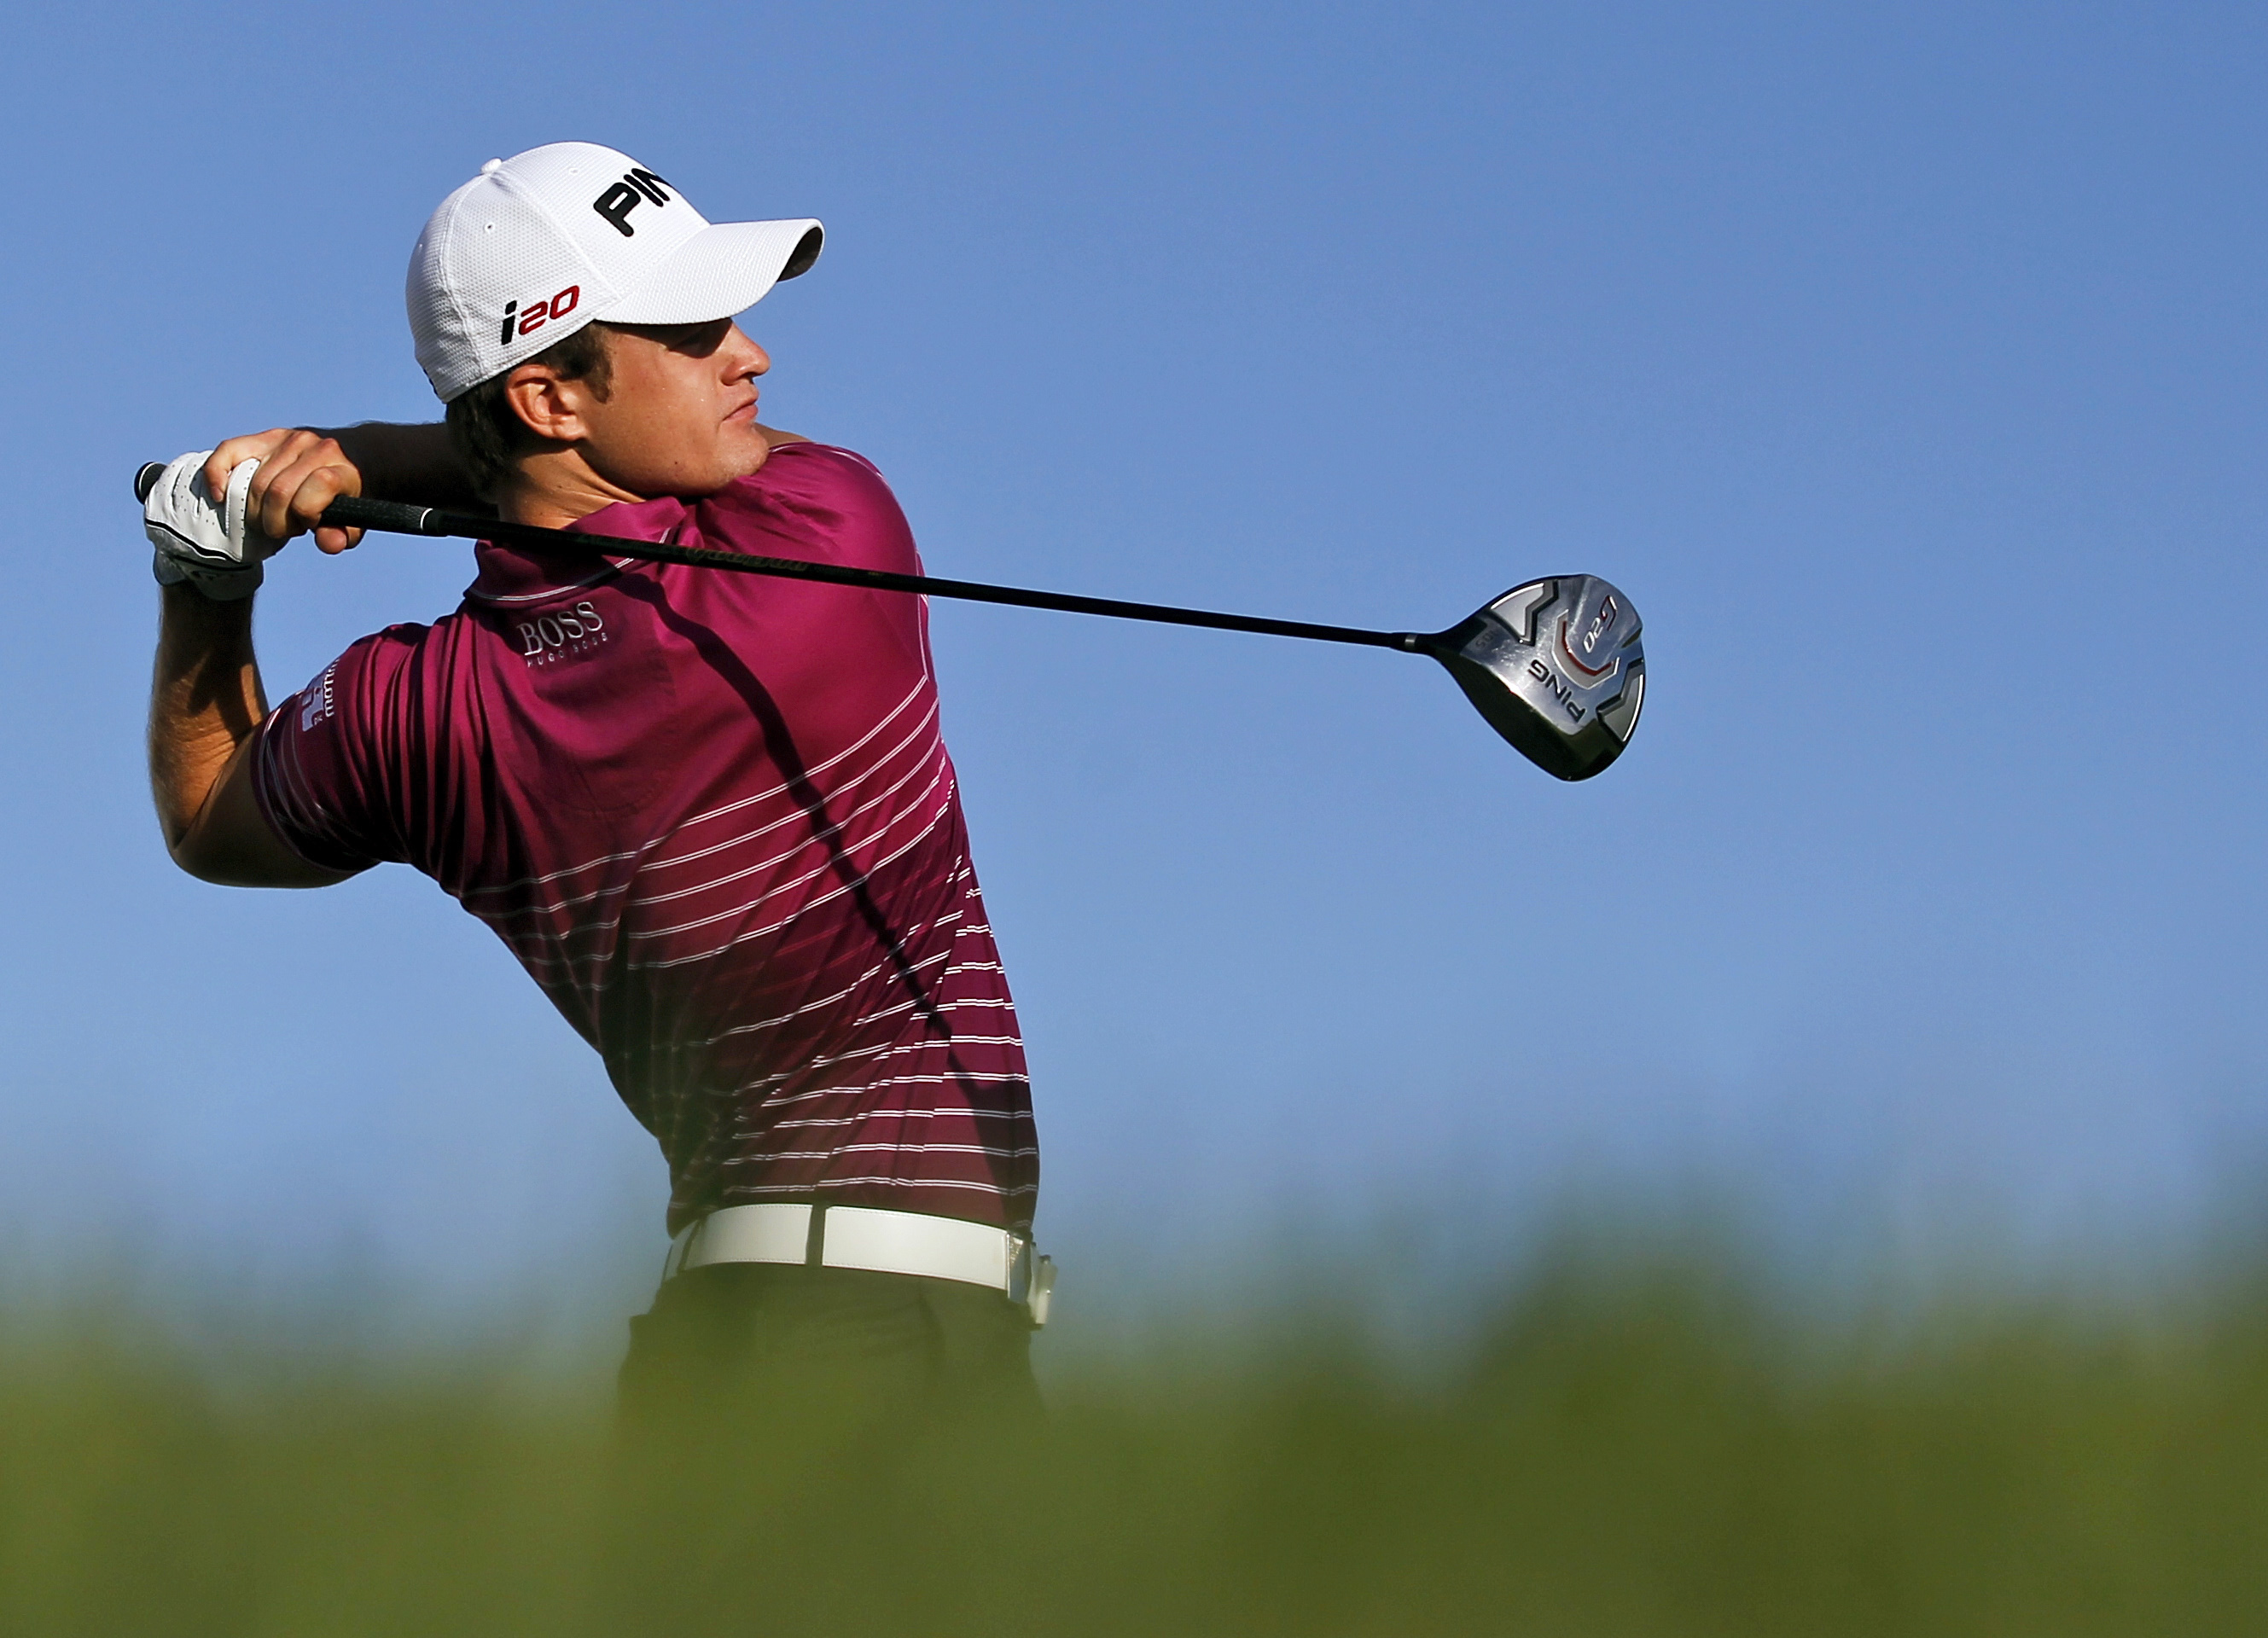 FILE - A Thursday, Oct. 11, 2012 file photo of Tom Lewis, from Britain, teeing off from the 14th hole during the first round of the Portugal Master golf tournament at the Victoria golf course in Vilamoura, southern Portugal. Next Thursday, Nov. 17, 2016,